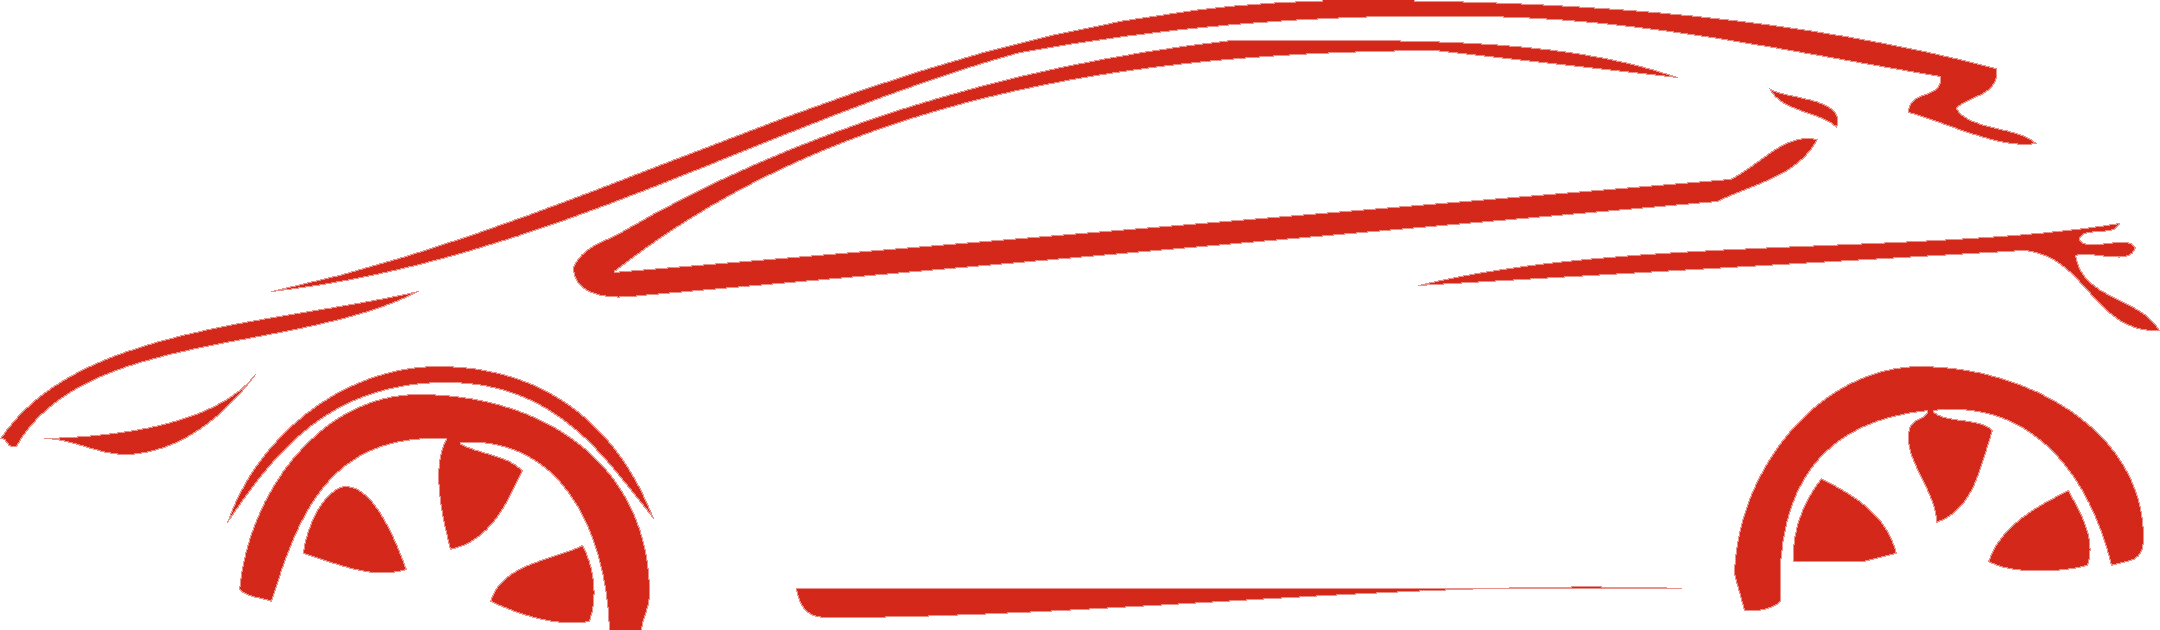 Garage Boden Vacatures Vacatures Garage Twello In Twello